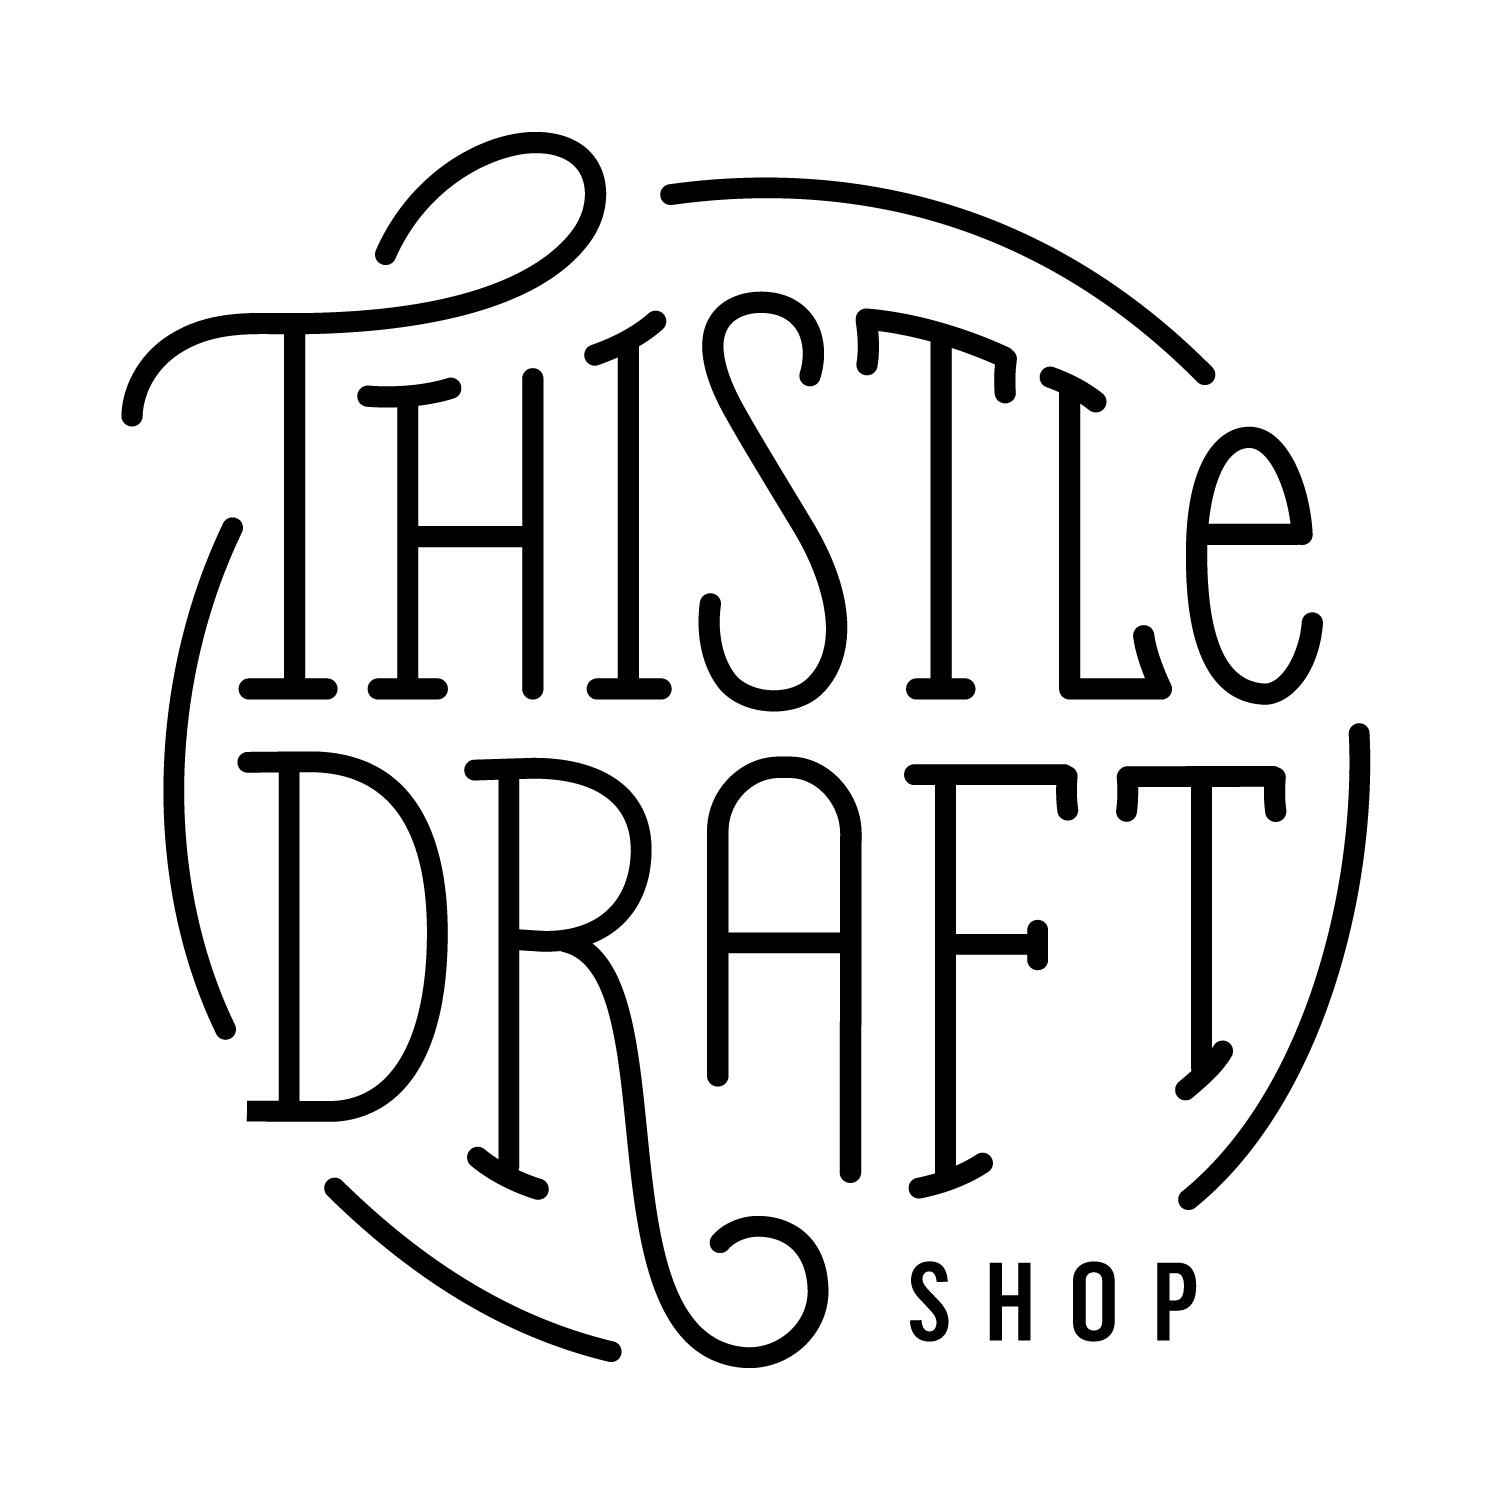 Thistle Draft Shop